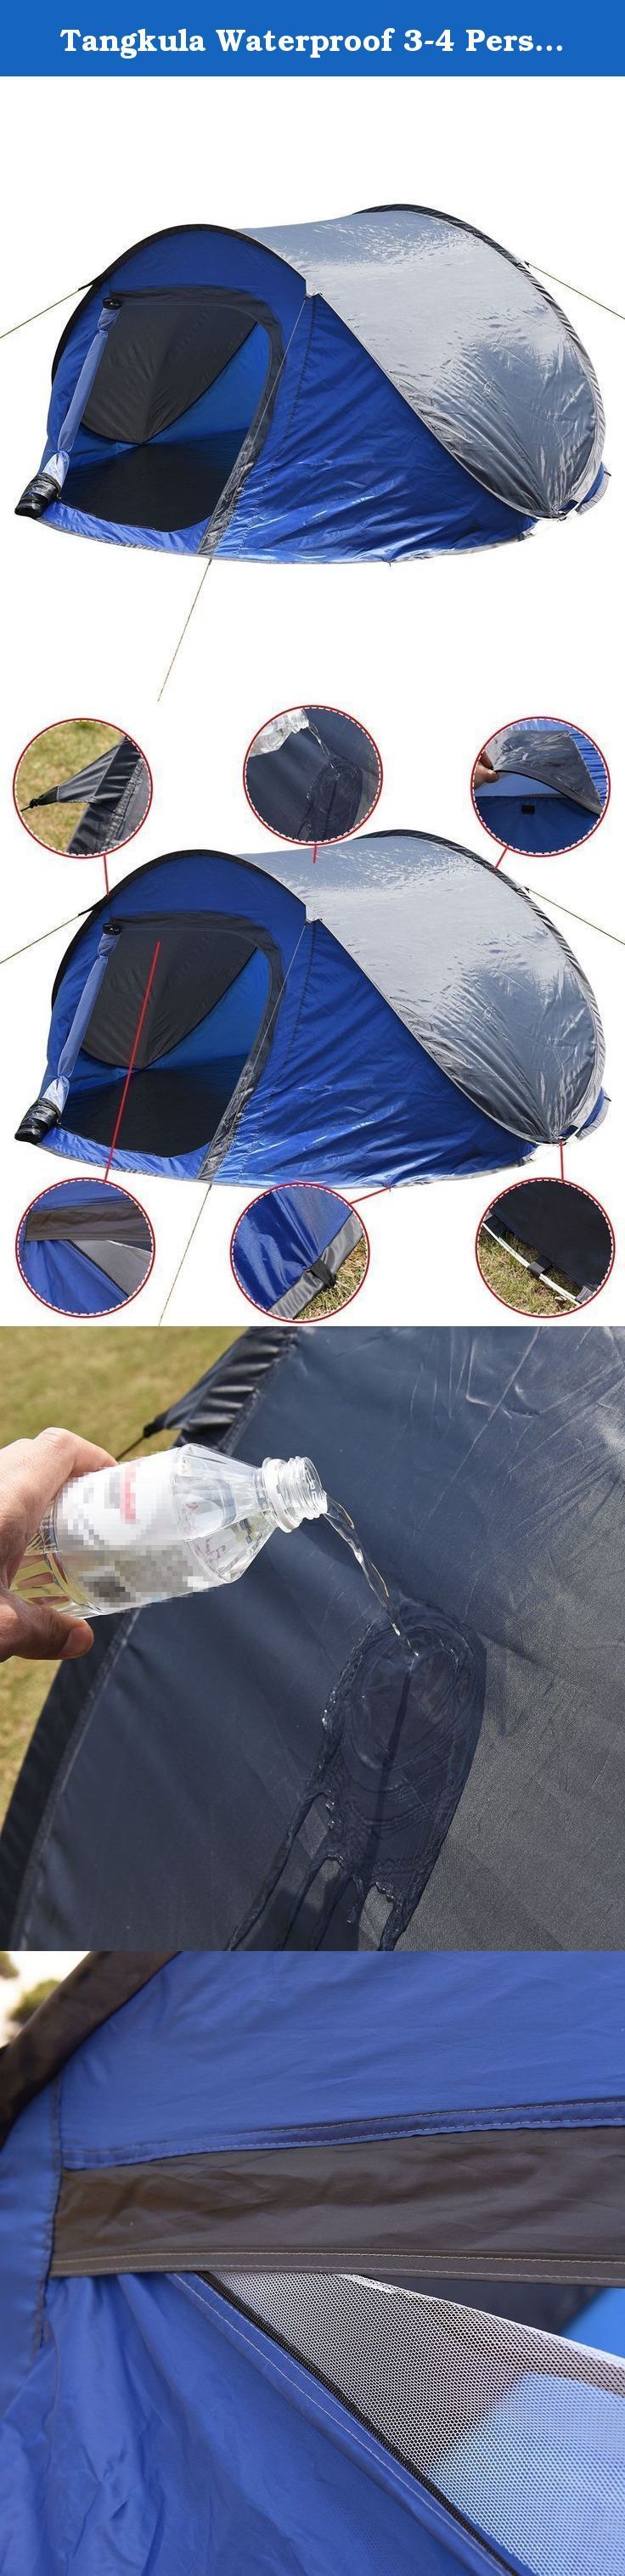 Tangkula Waterproof 3-4 Person Camping Tent Automatic Pop Up Quick Shelter Outdoor Hiking. Because Of The Special Structure, This Automatic Tent Can Be Set Up Quickly And Suitable For Two Persons. Super Classic Interior Design, Door Can Be Opened From Inside And Outside, Convenient And Comfortable. Professional Waterproof Fabric, Wind Proof By Strong Skeleton With The Tent Nails. Compact And Lightweight, Come With A Carrying Bag, Very Convenient To Carry And Store. Good Ideal For Camping…